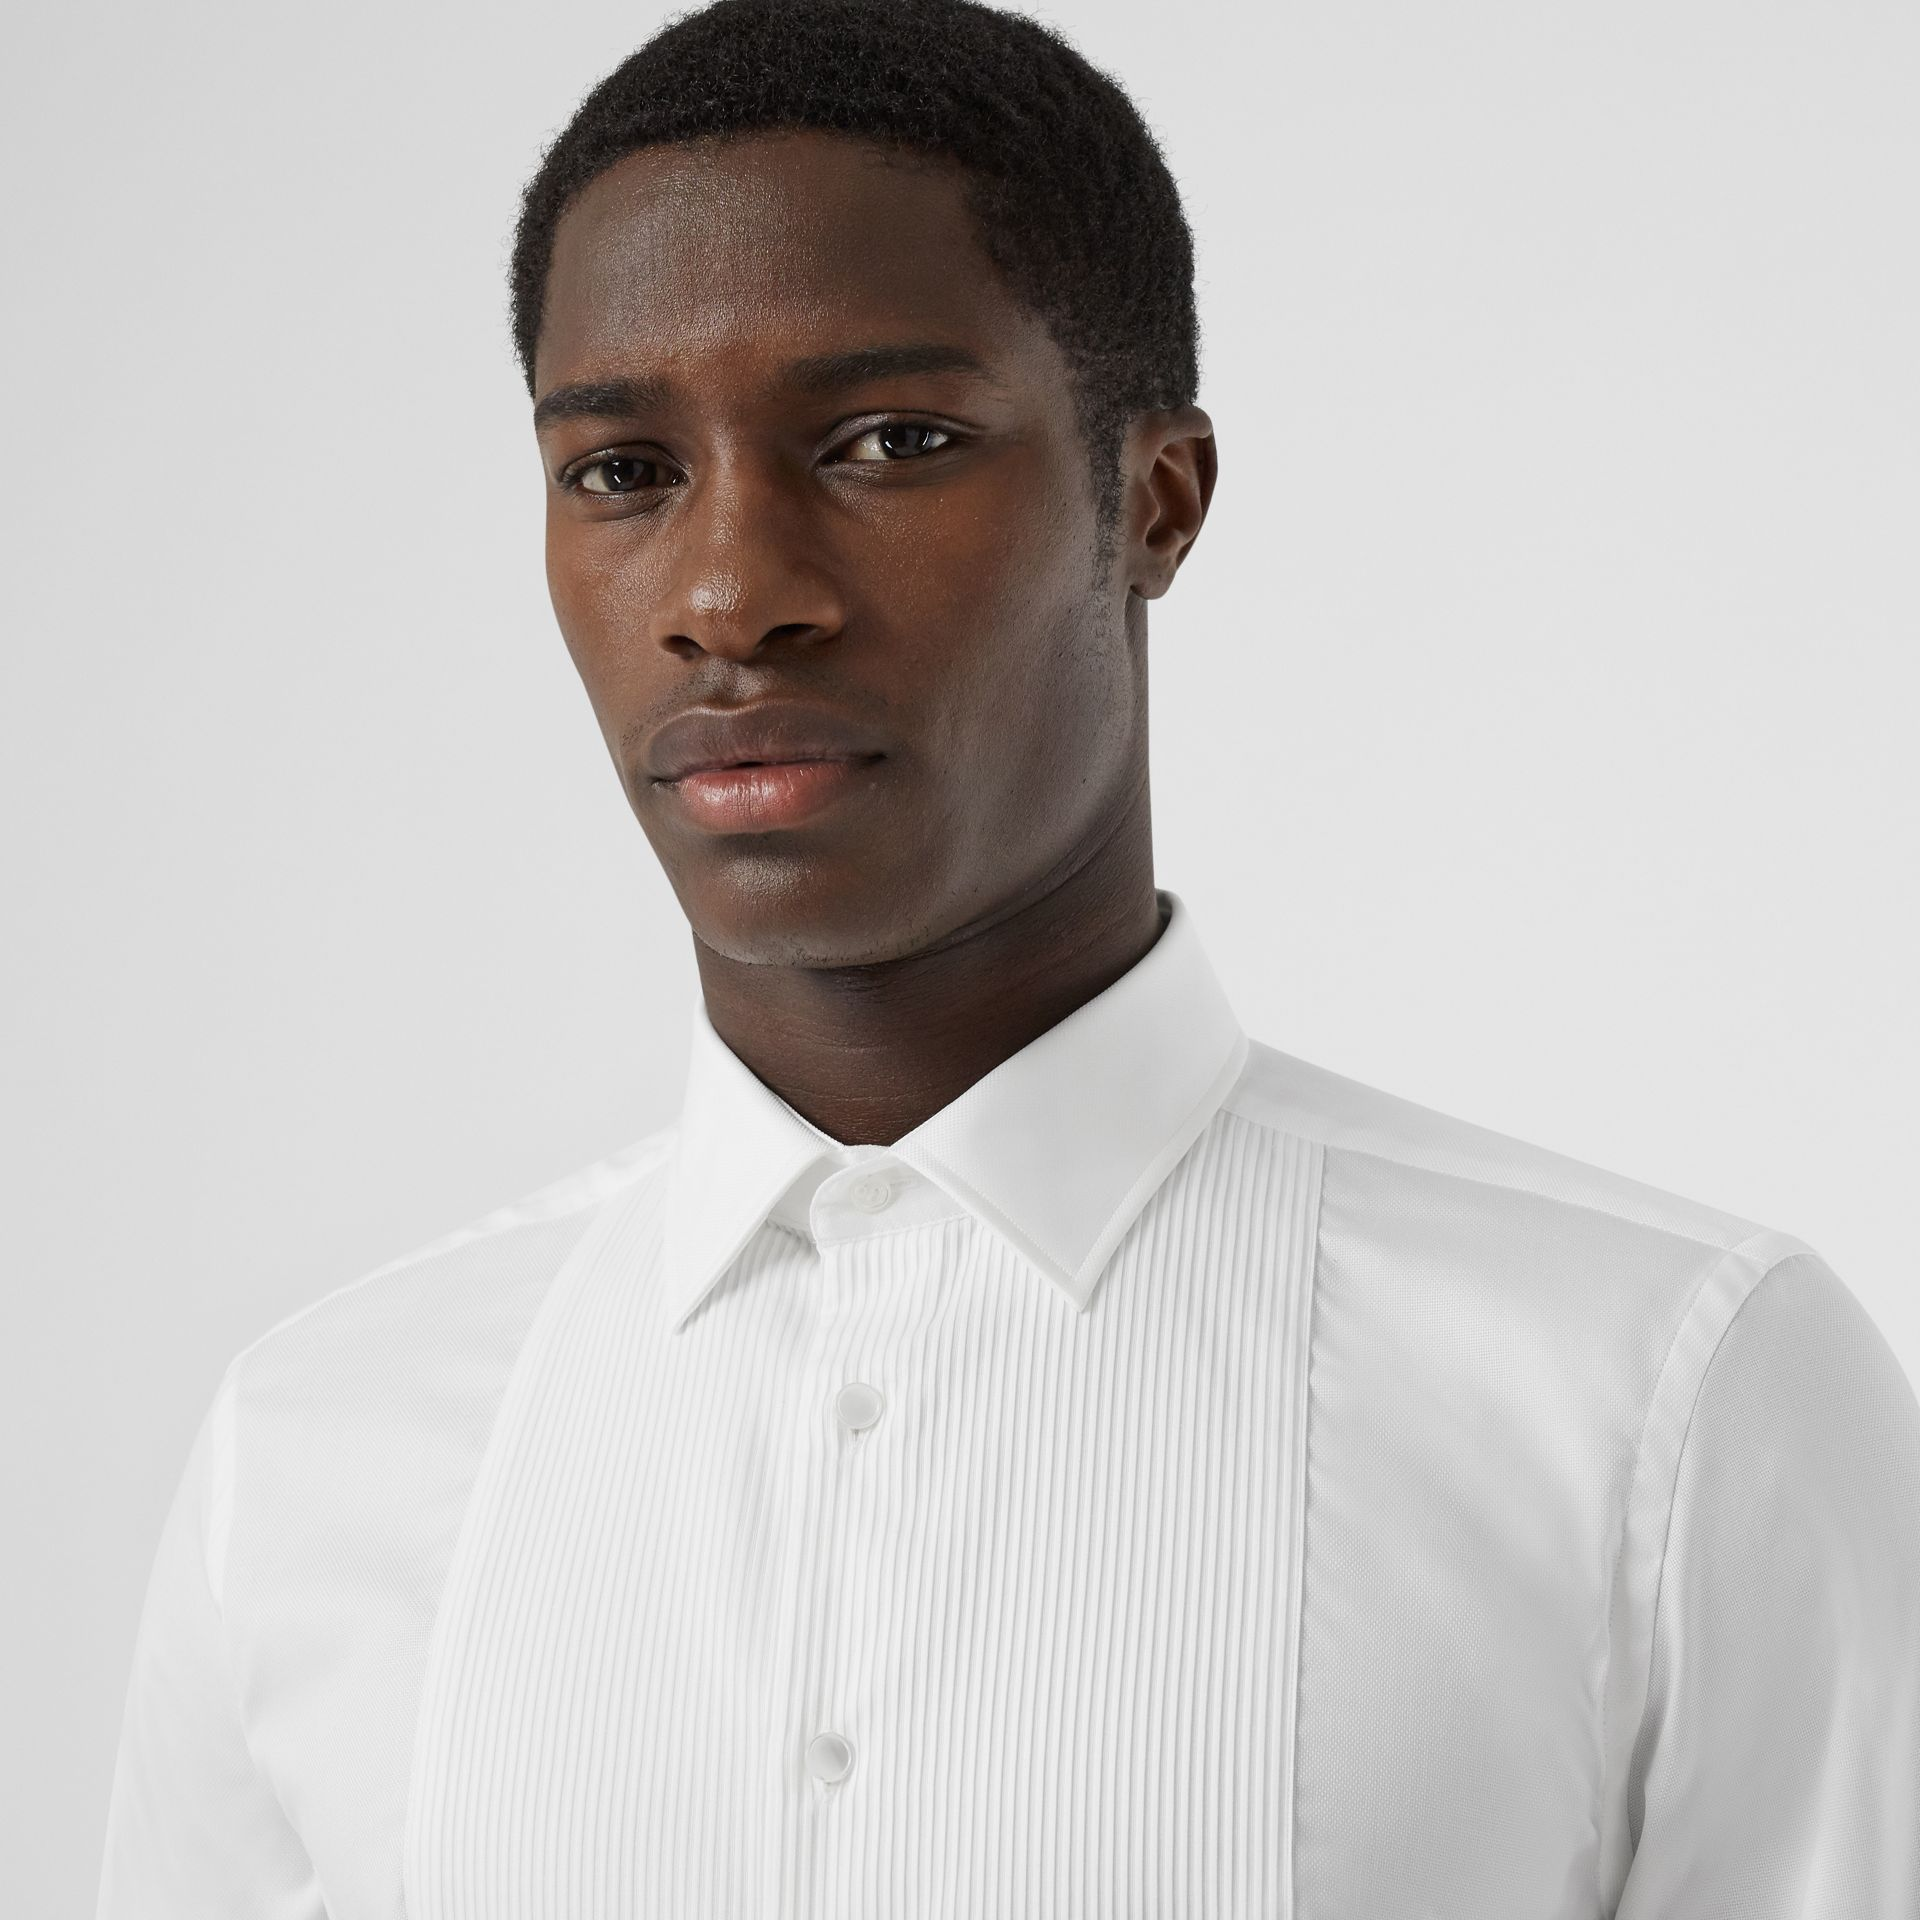 Ribbed Bib Cotton Oxford Dress Shirt in White - Men | Burberry - gallery image 1